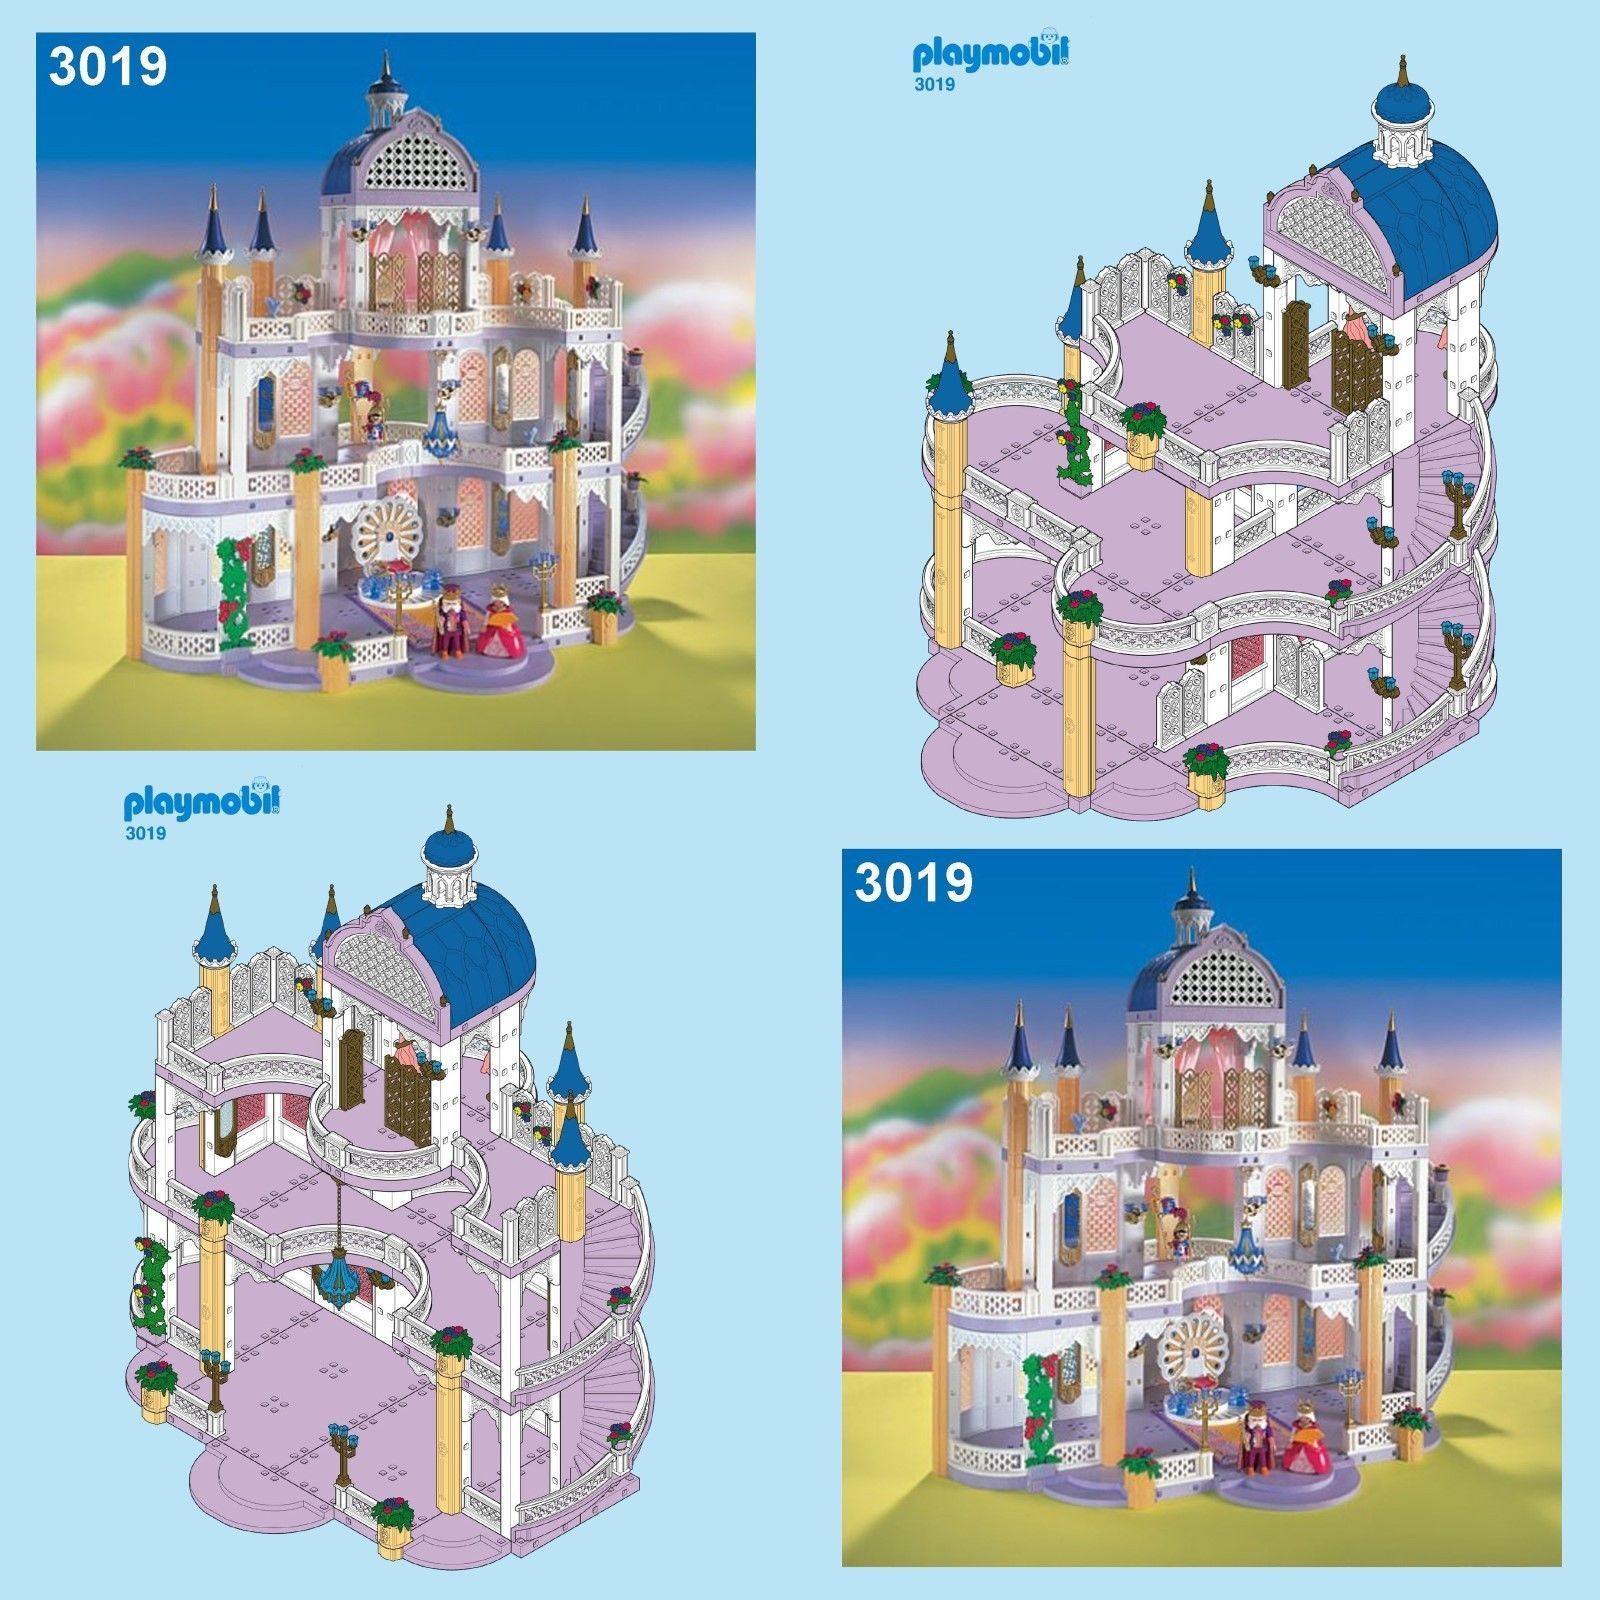 Playmobil Princess Castle 3019 3020 3098 Spares Spare Parts Service Playmobil Princess Castle Princess Castle Castle